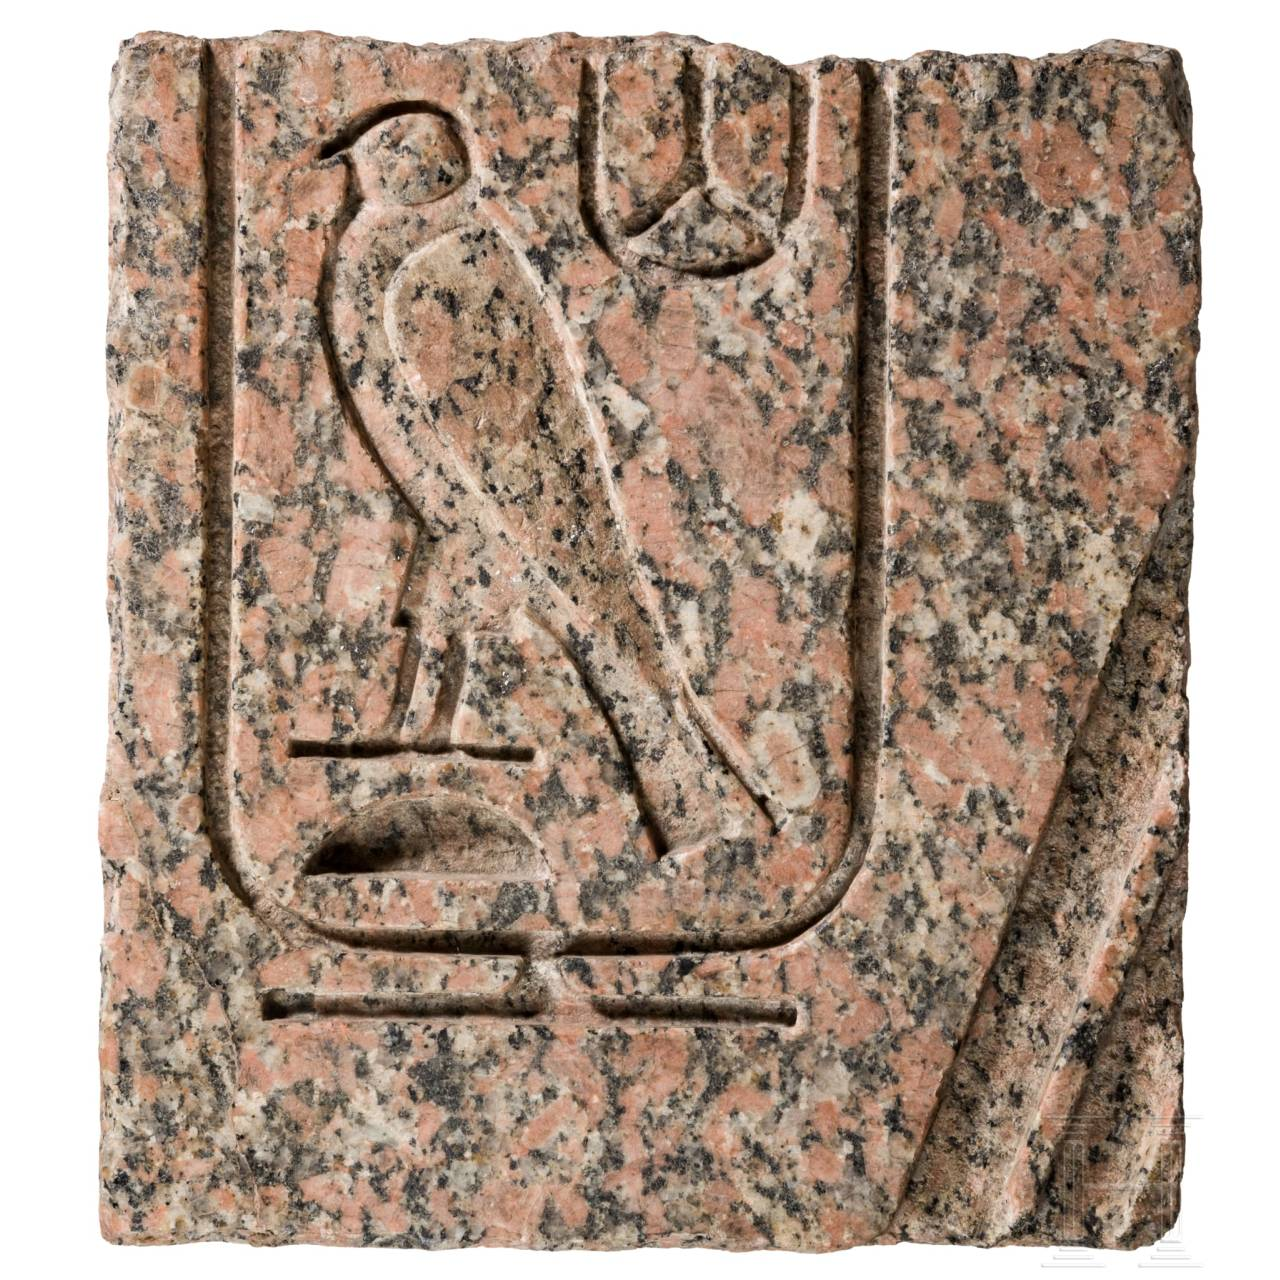 A large Egyptian fragment of a stele with hieroglyphics, 2nd - 1st millenium B.C.